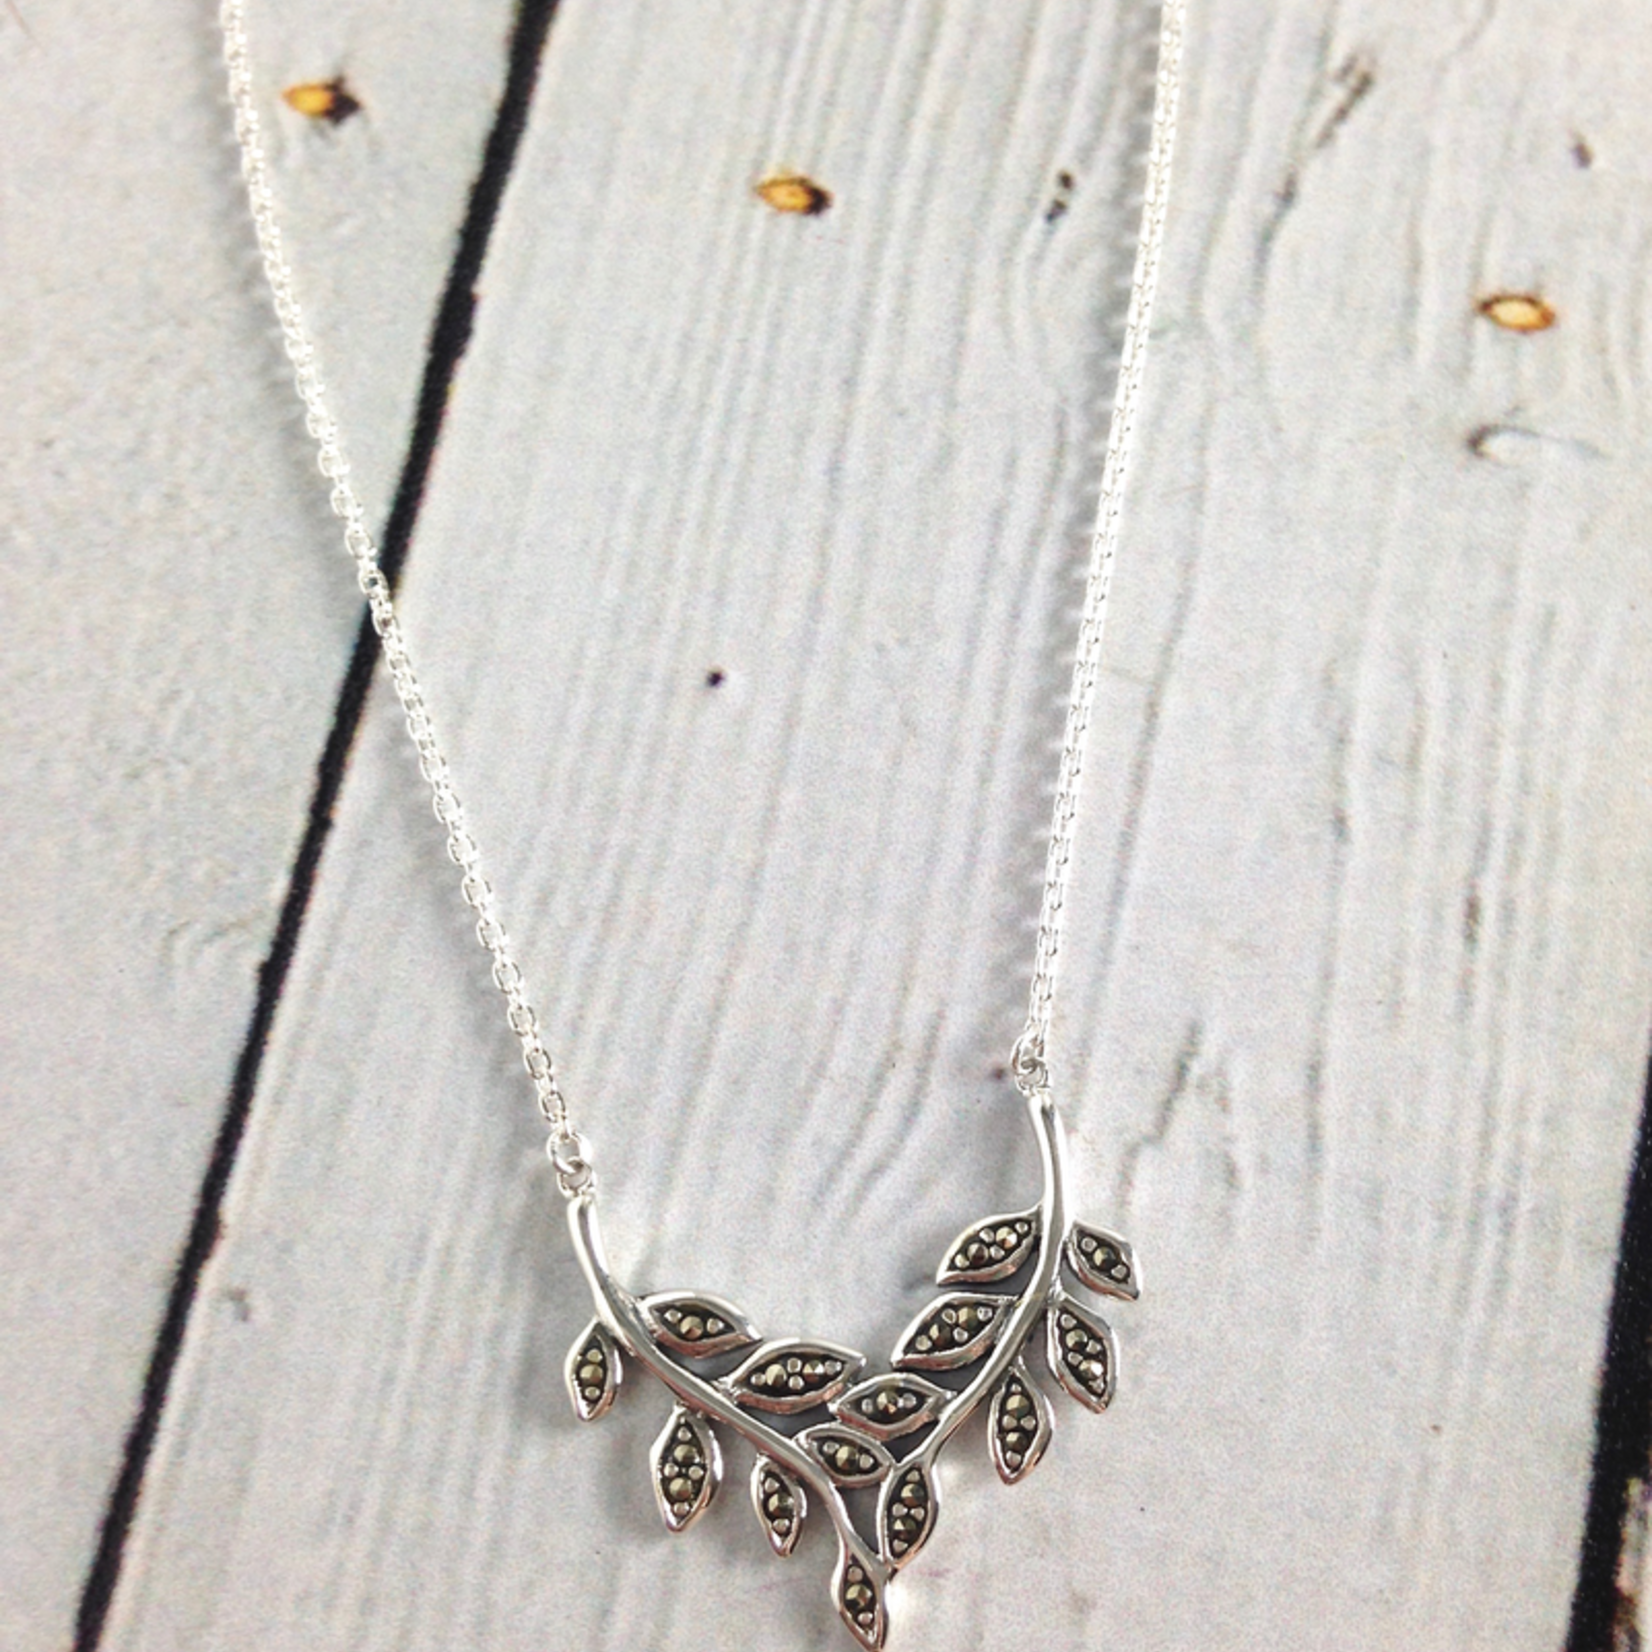 Sterling Silver and Marcasite Branches necklace